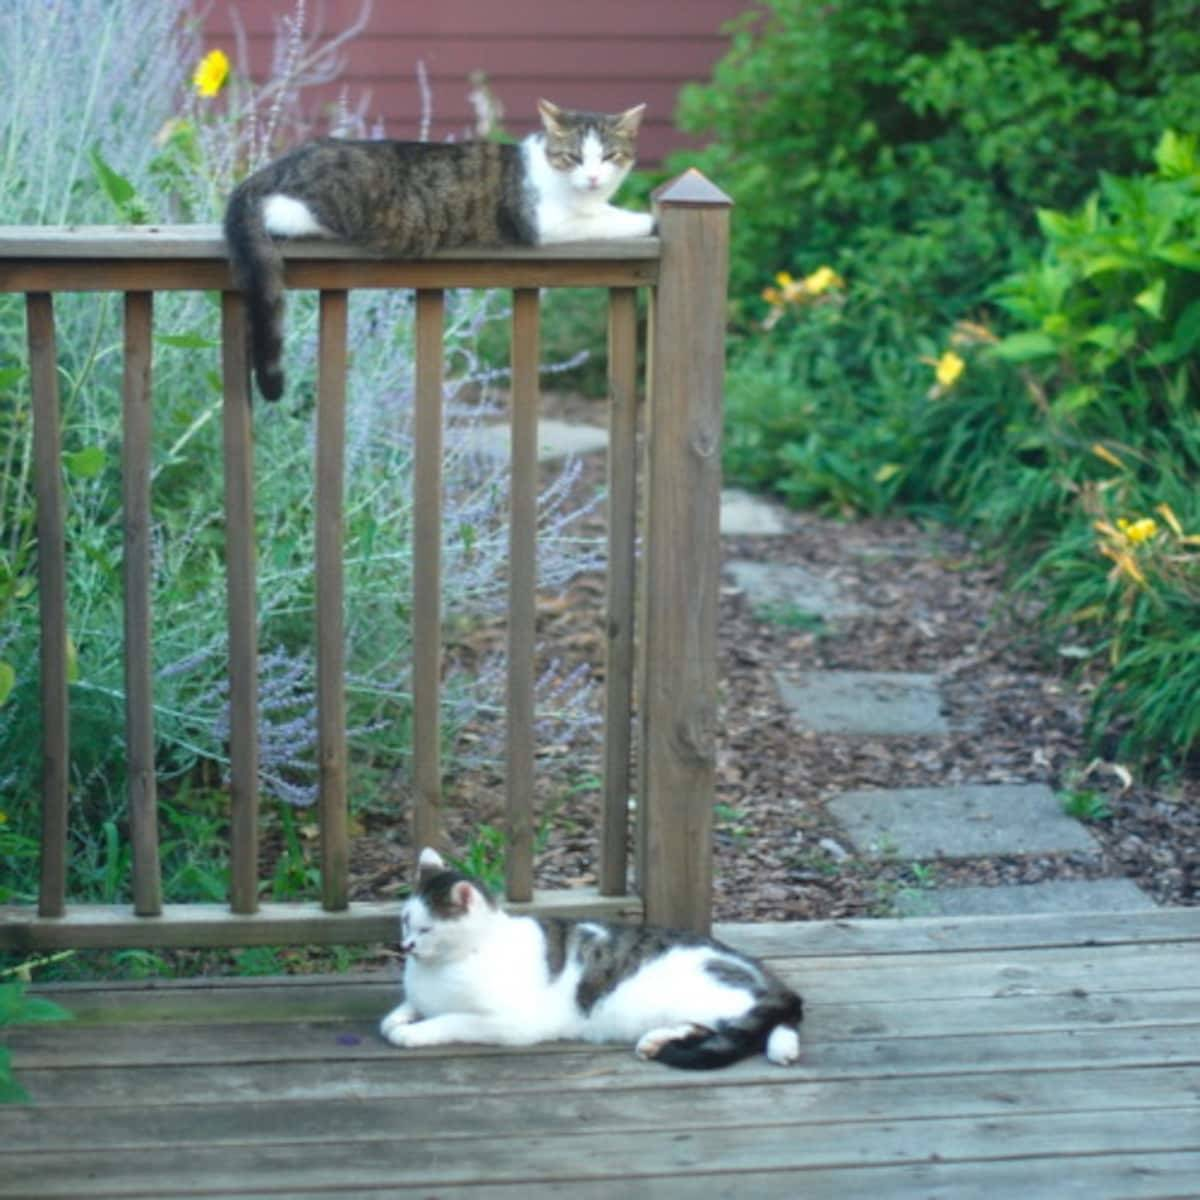 Two cats resting near a fence post.